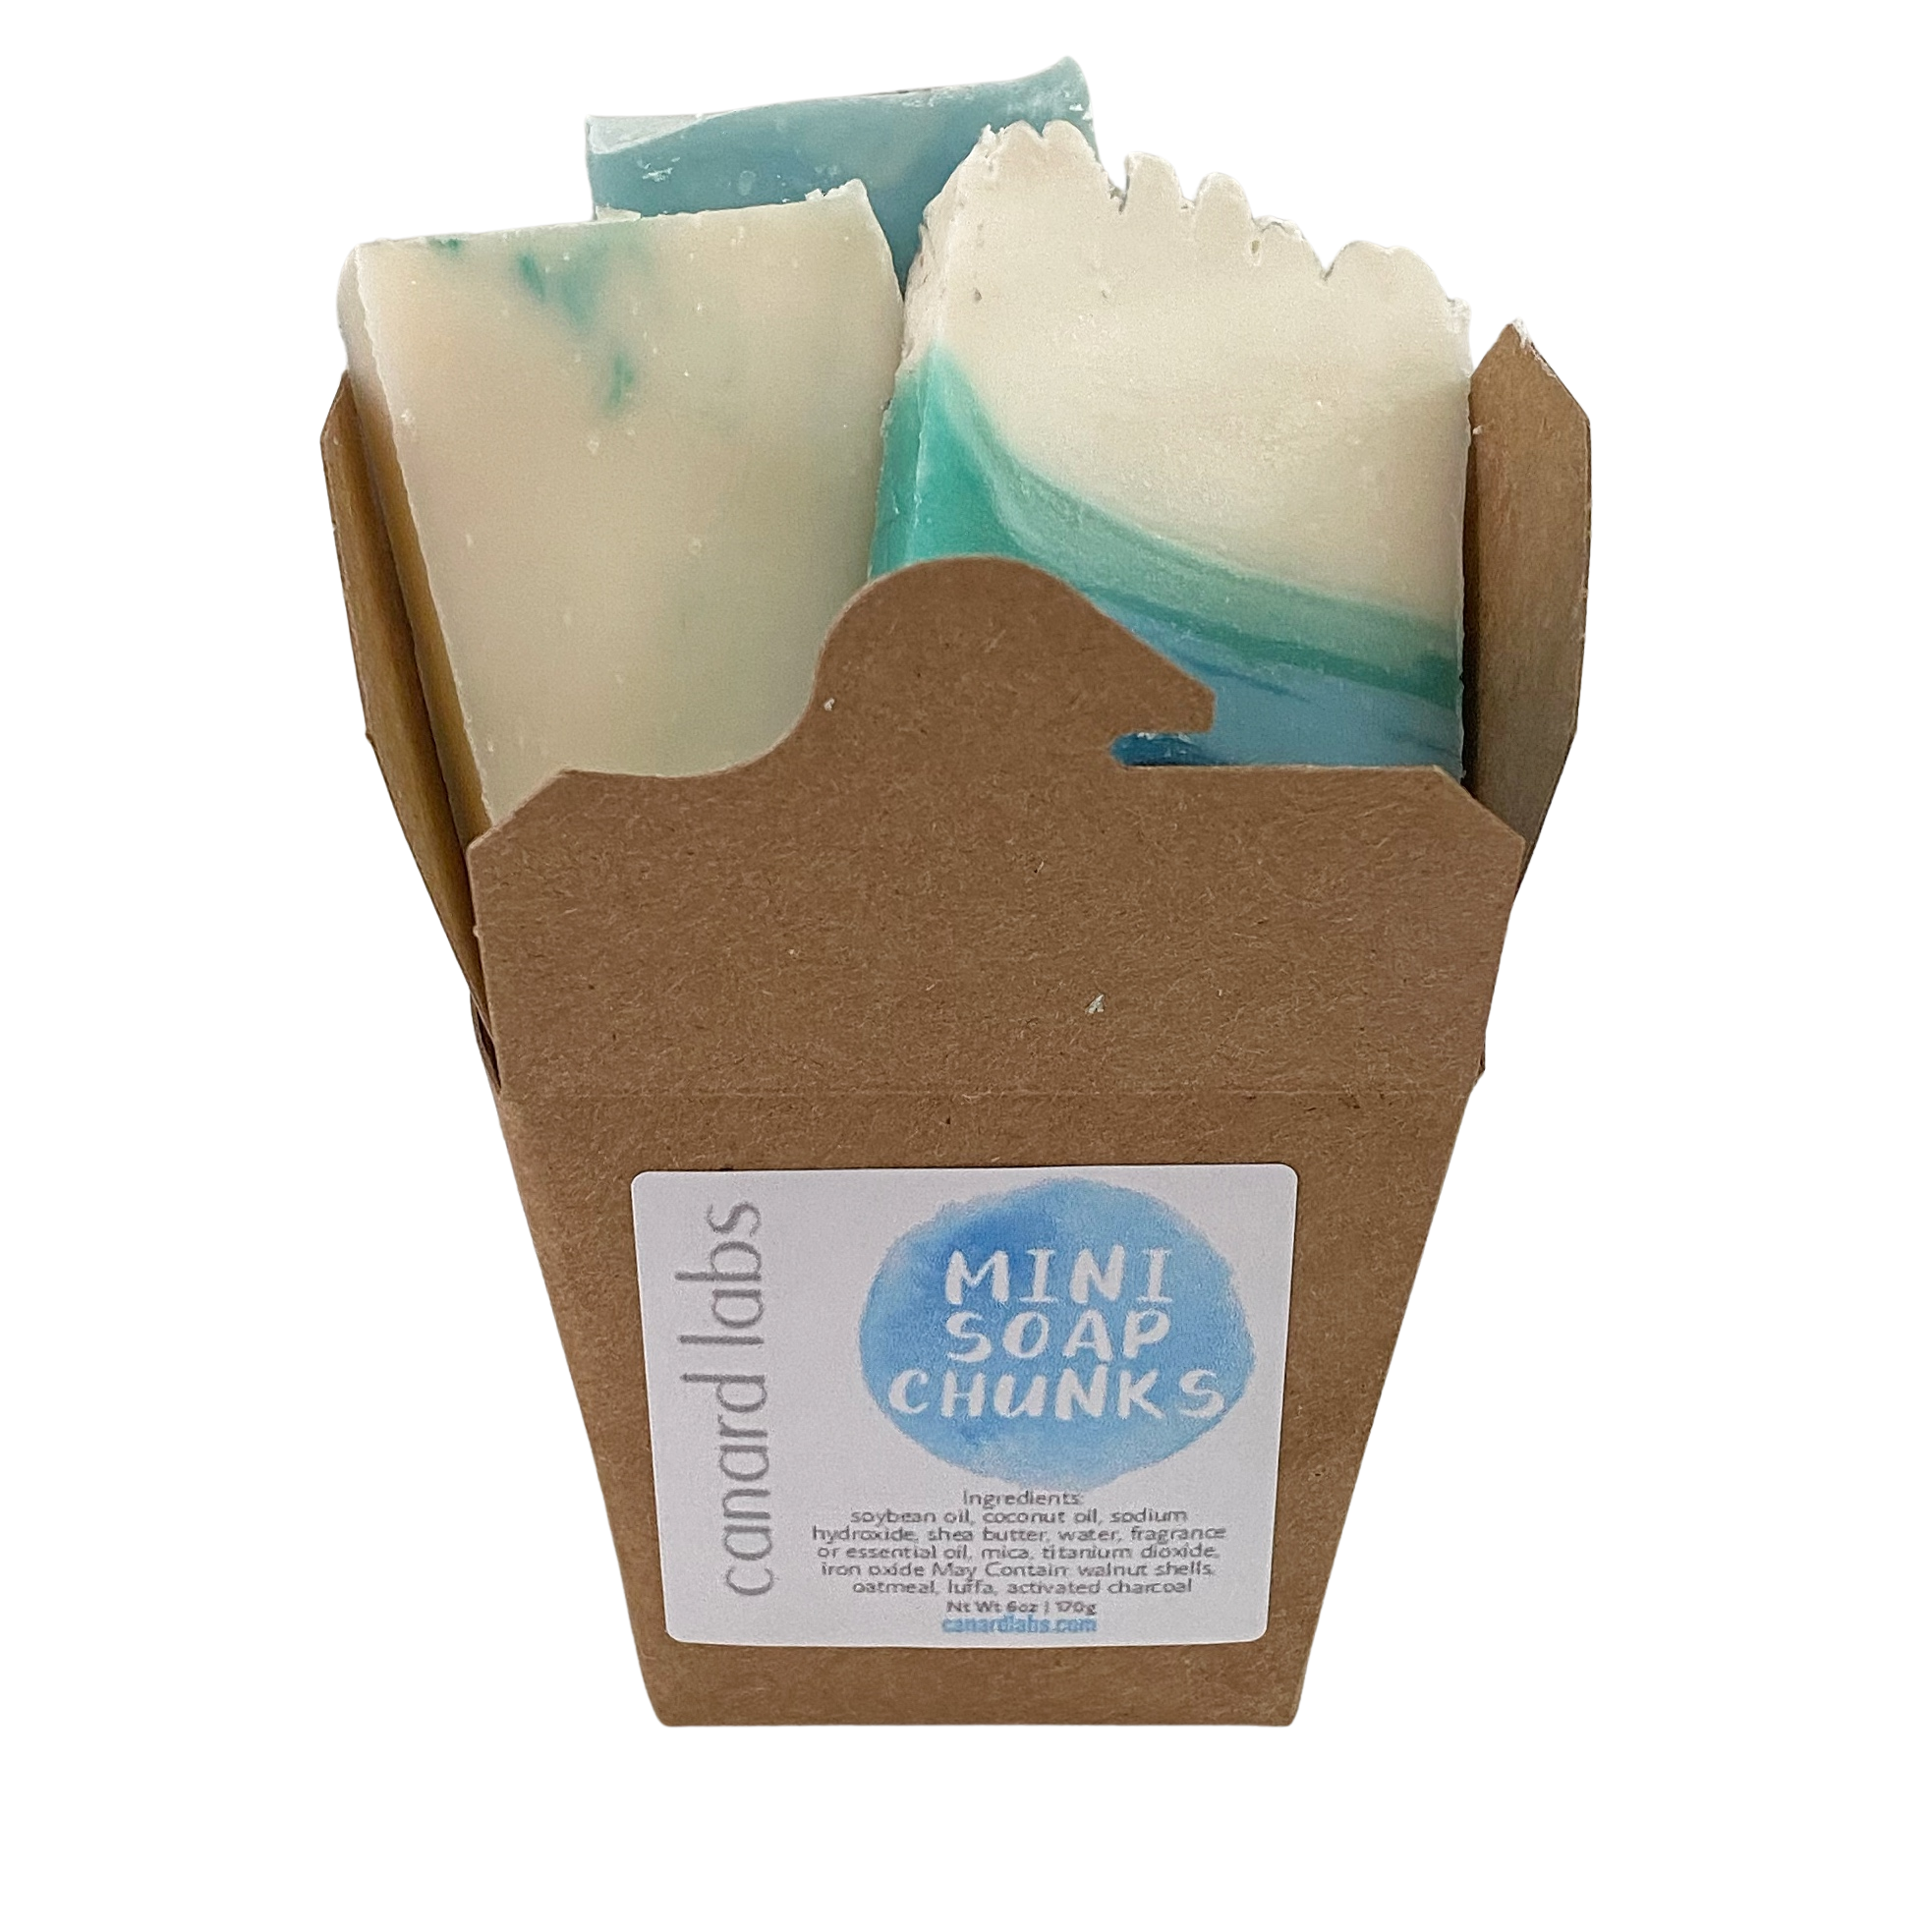 Mini Soap Chunks